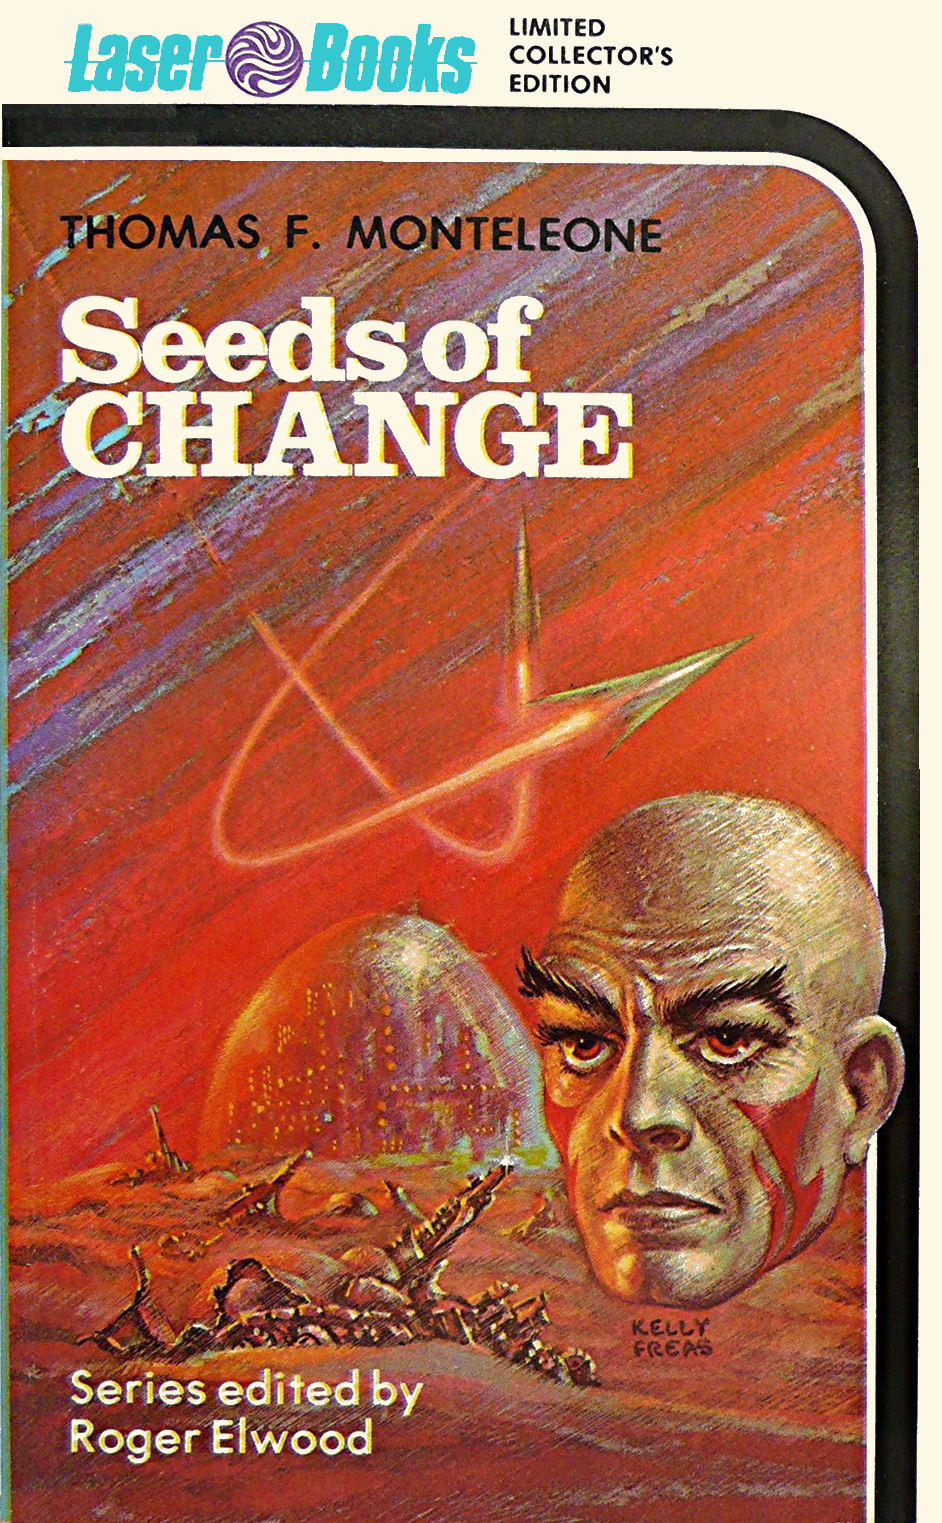 Laser Book #0 — Seeds of Change